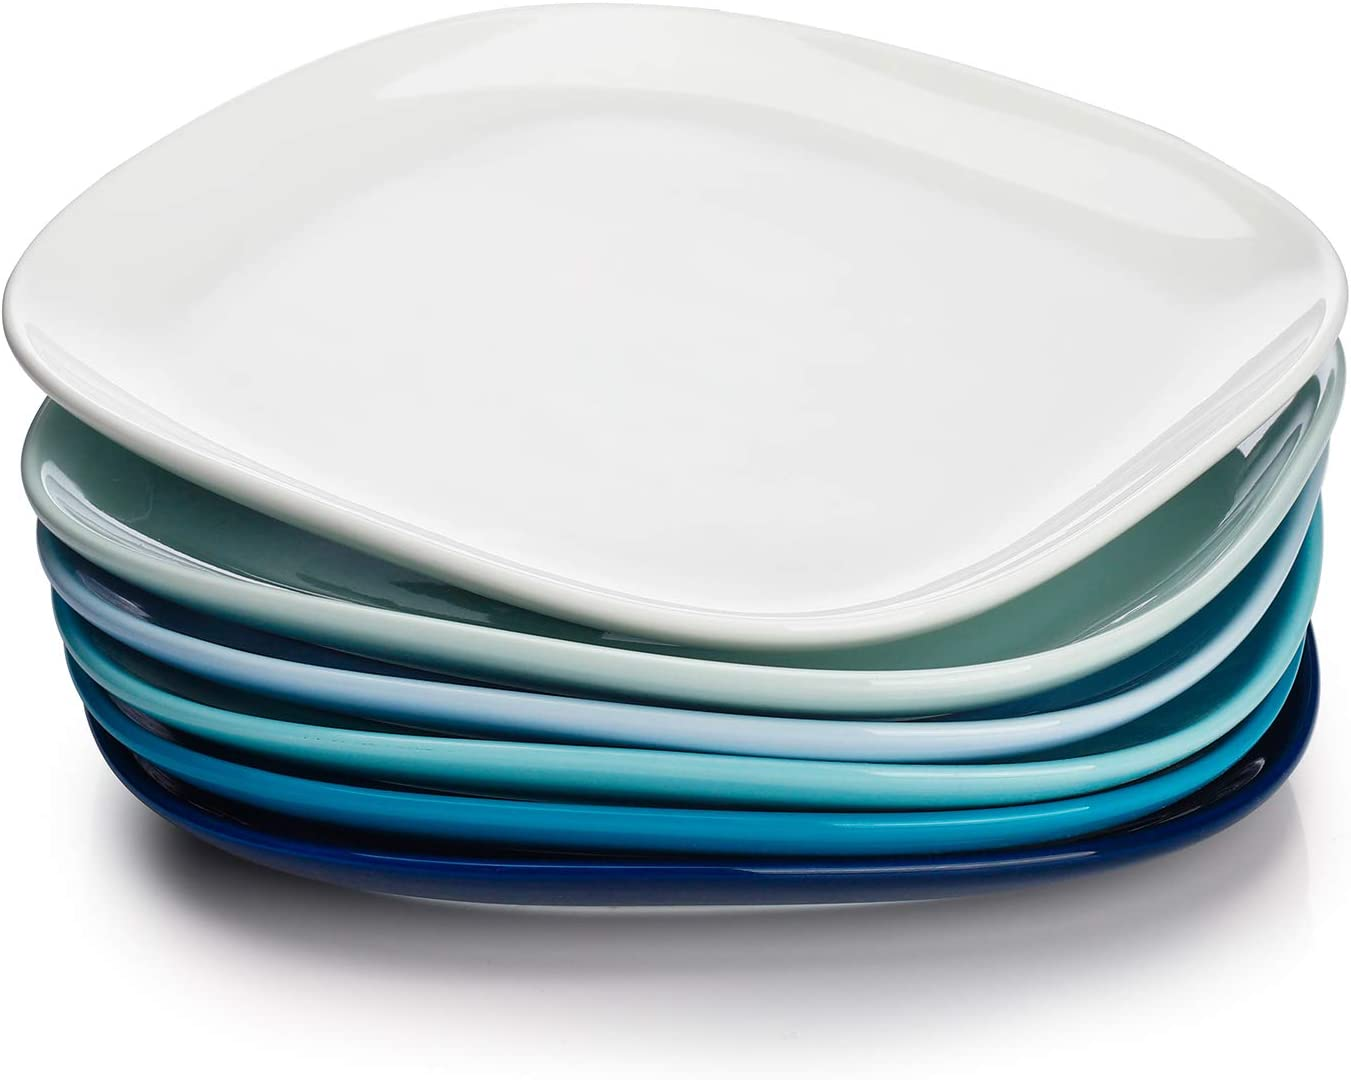 Sweese 152.003 Porcelain Square Dinner Plates - 10 Inch - Set of 6, Cool Assorted Colors